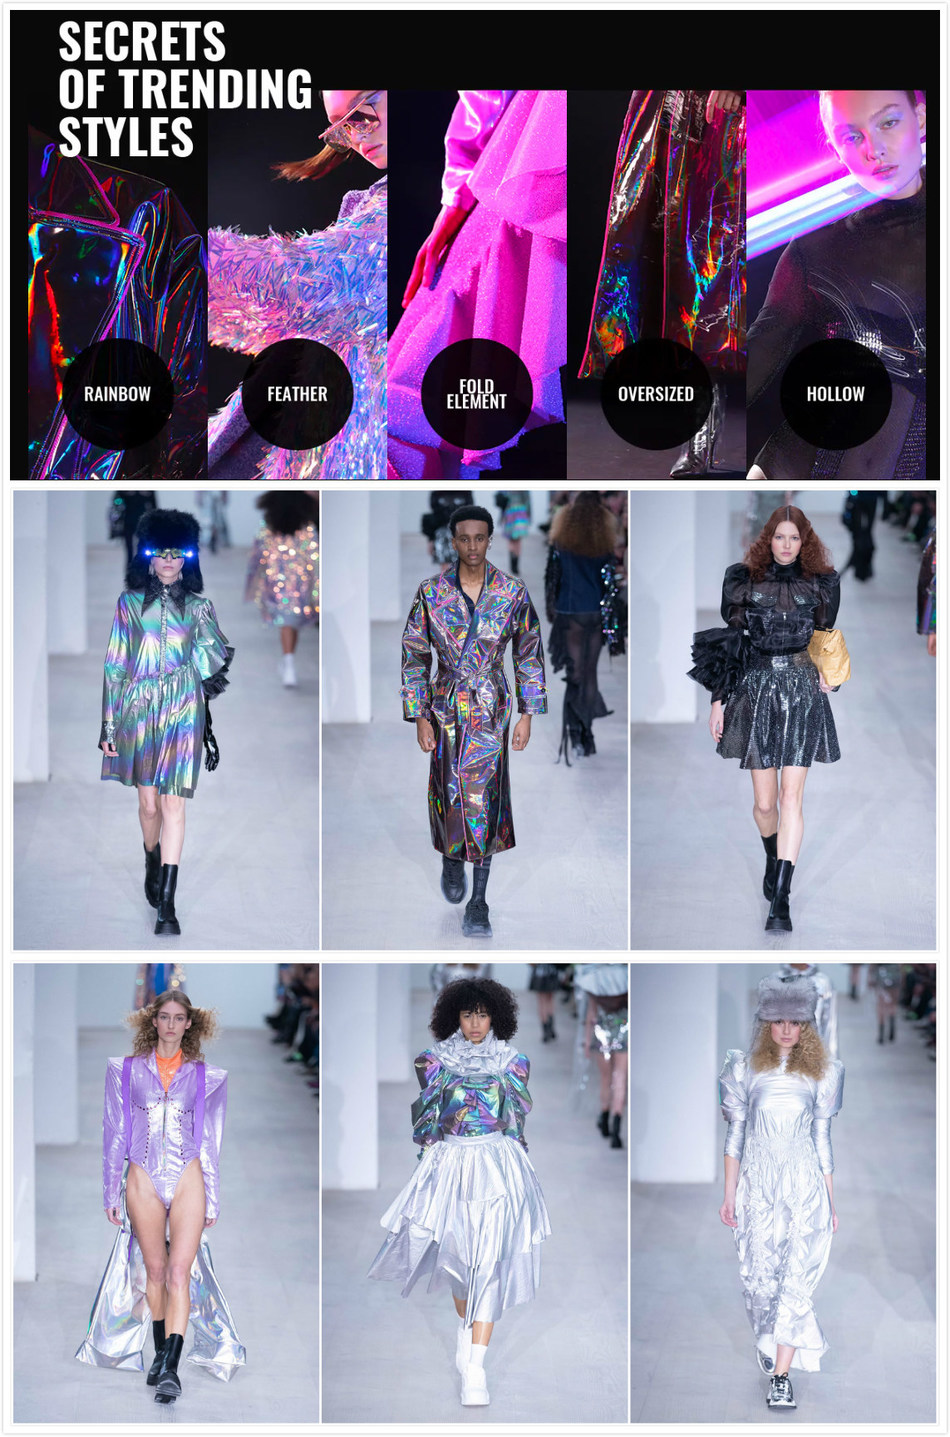 On February 14 in London, ZAFUL, a fast-fashion brand, together with On|Off appeared at London Fashion Runway Show.